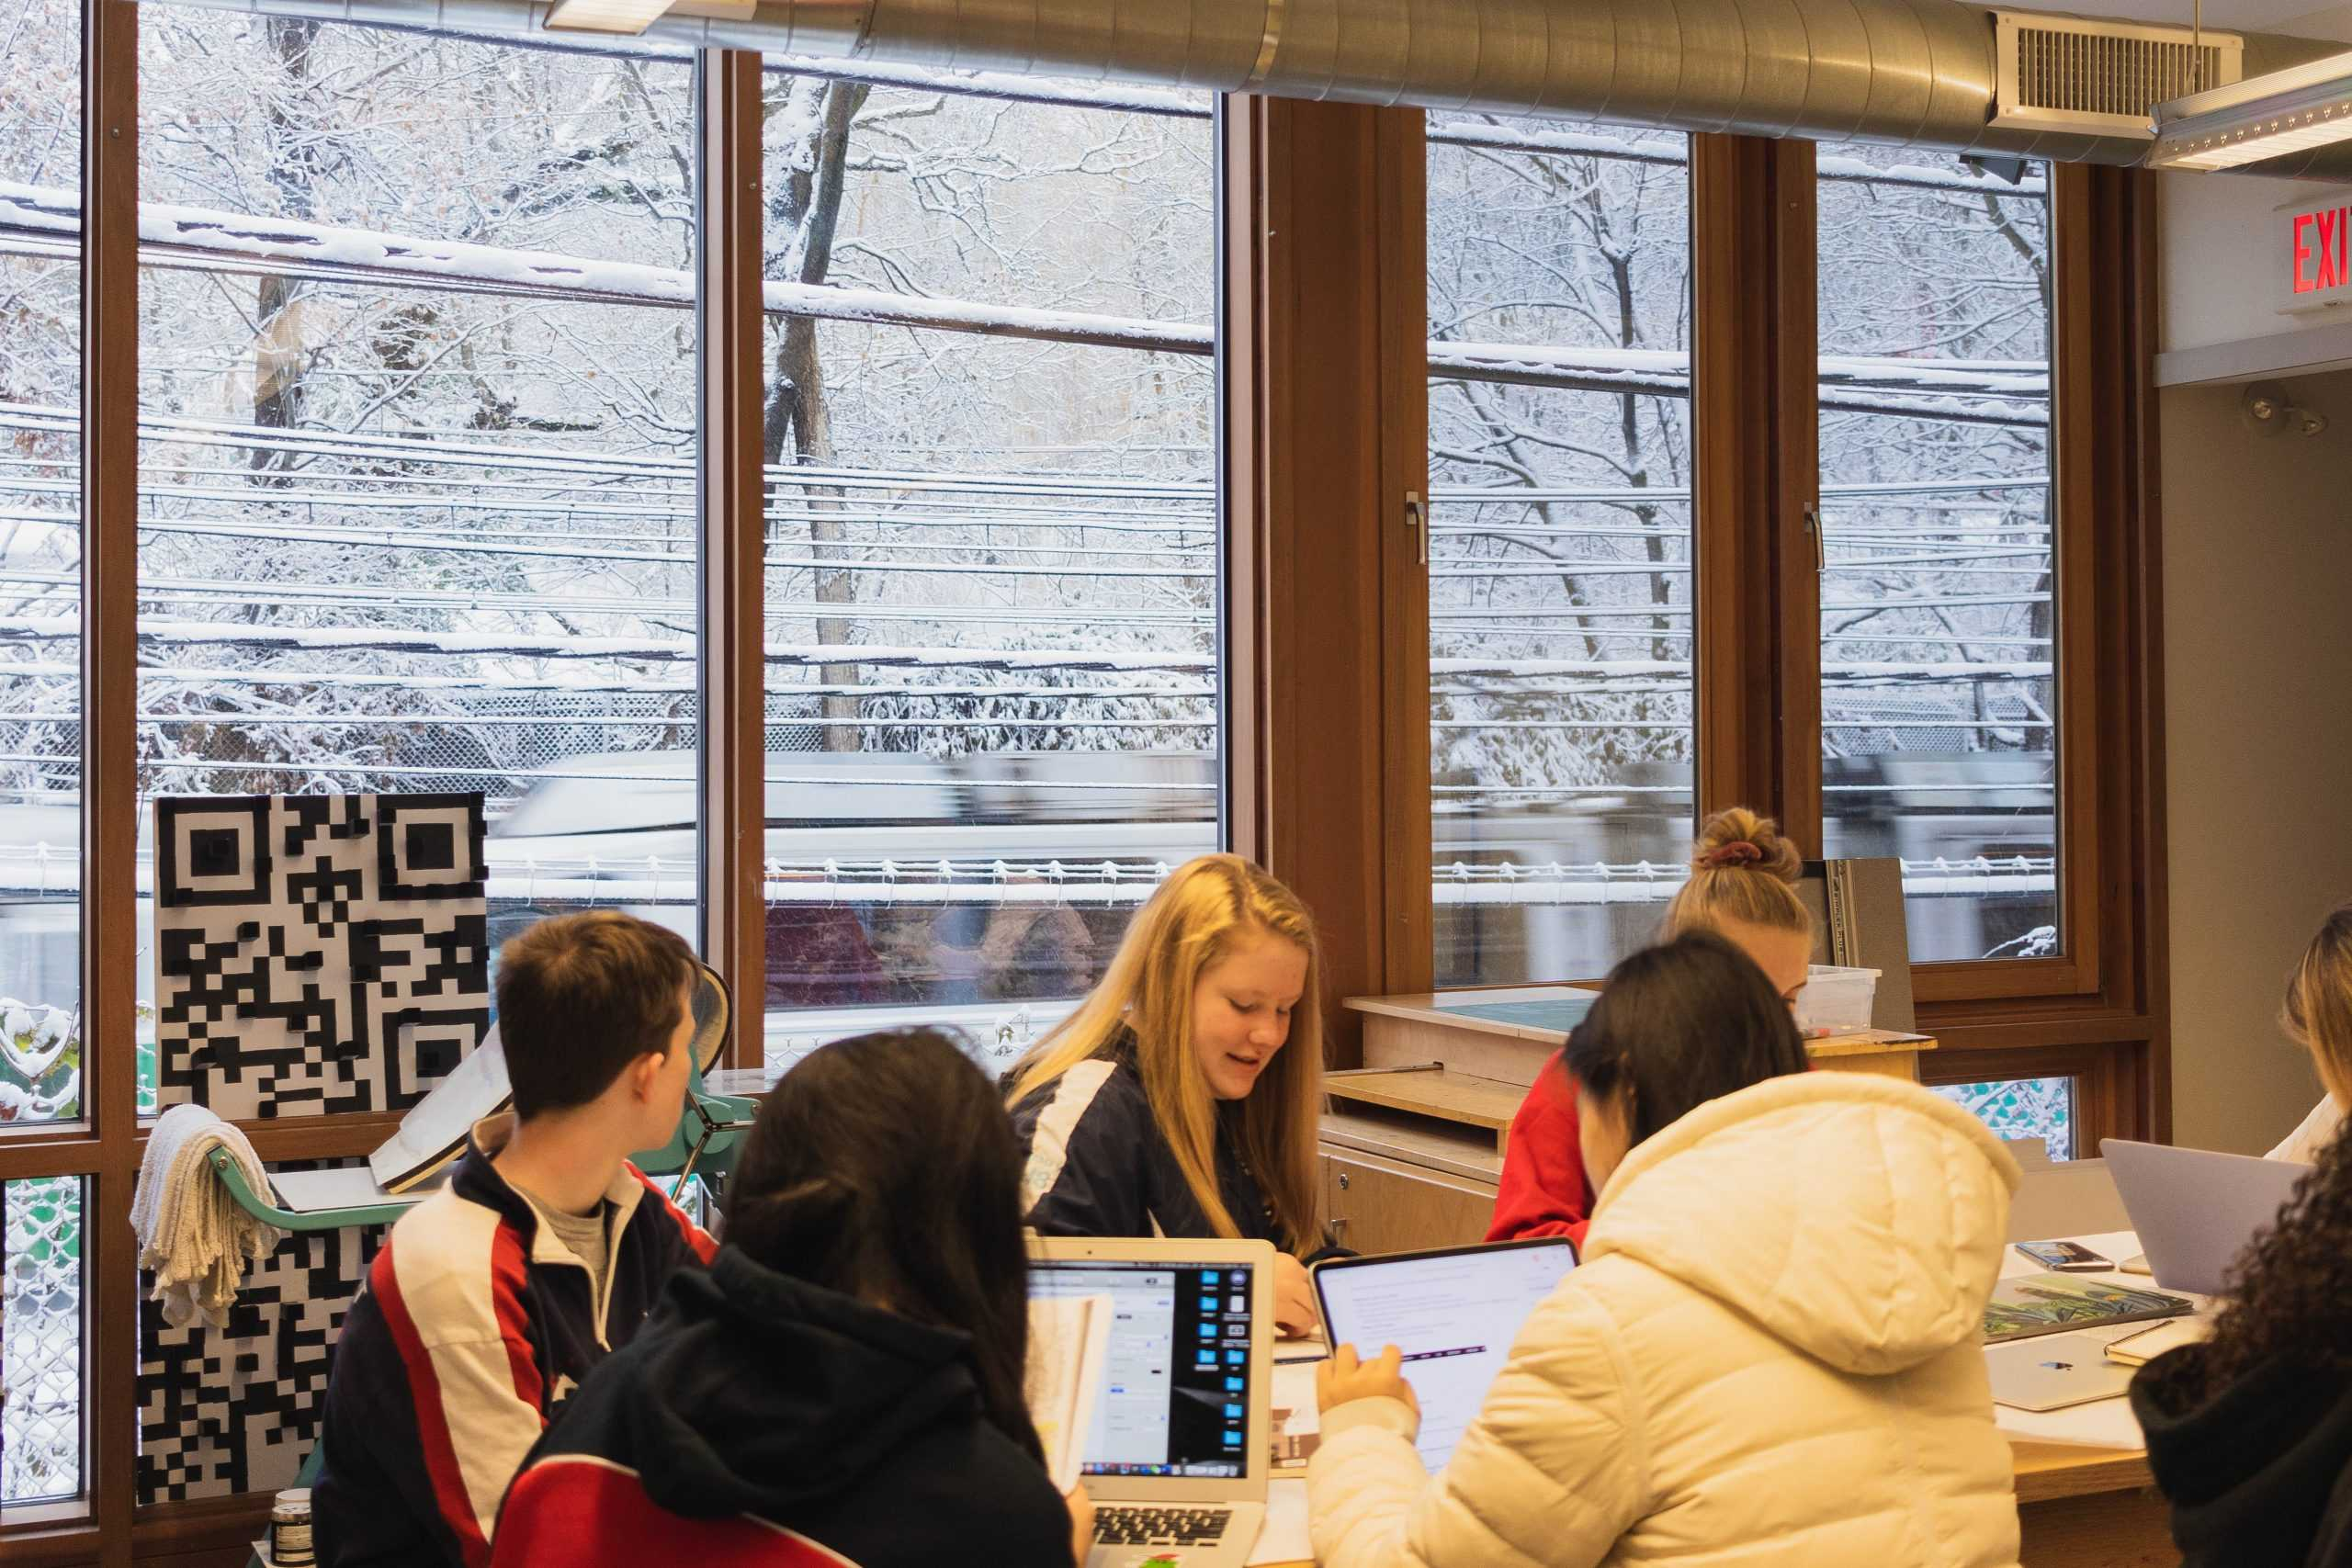 Students+are+working+hard+before+they+depart+for+winter+break.+